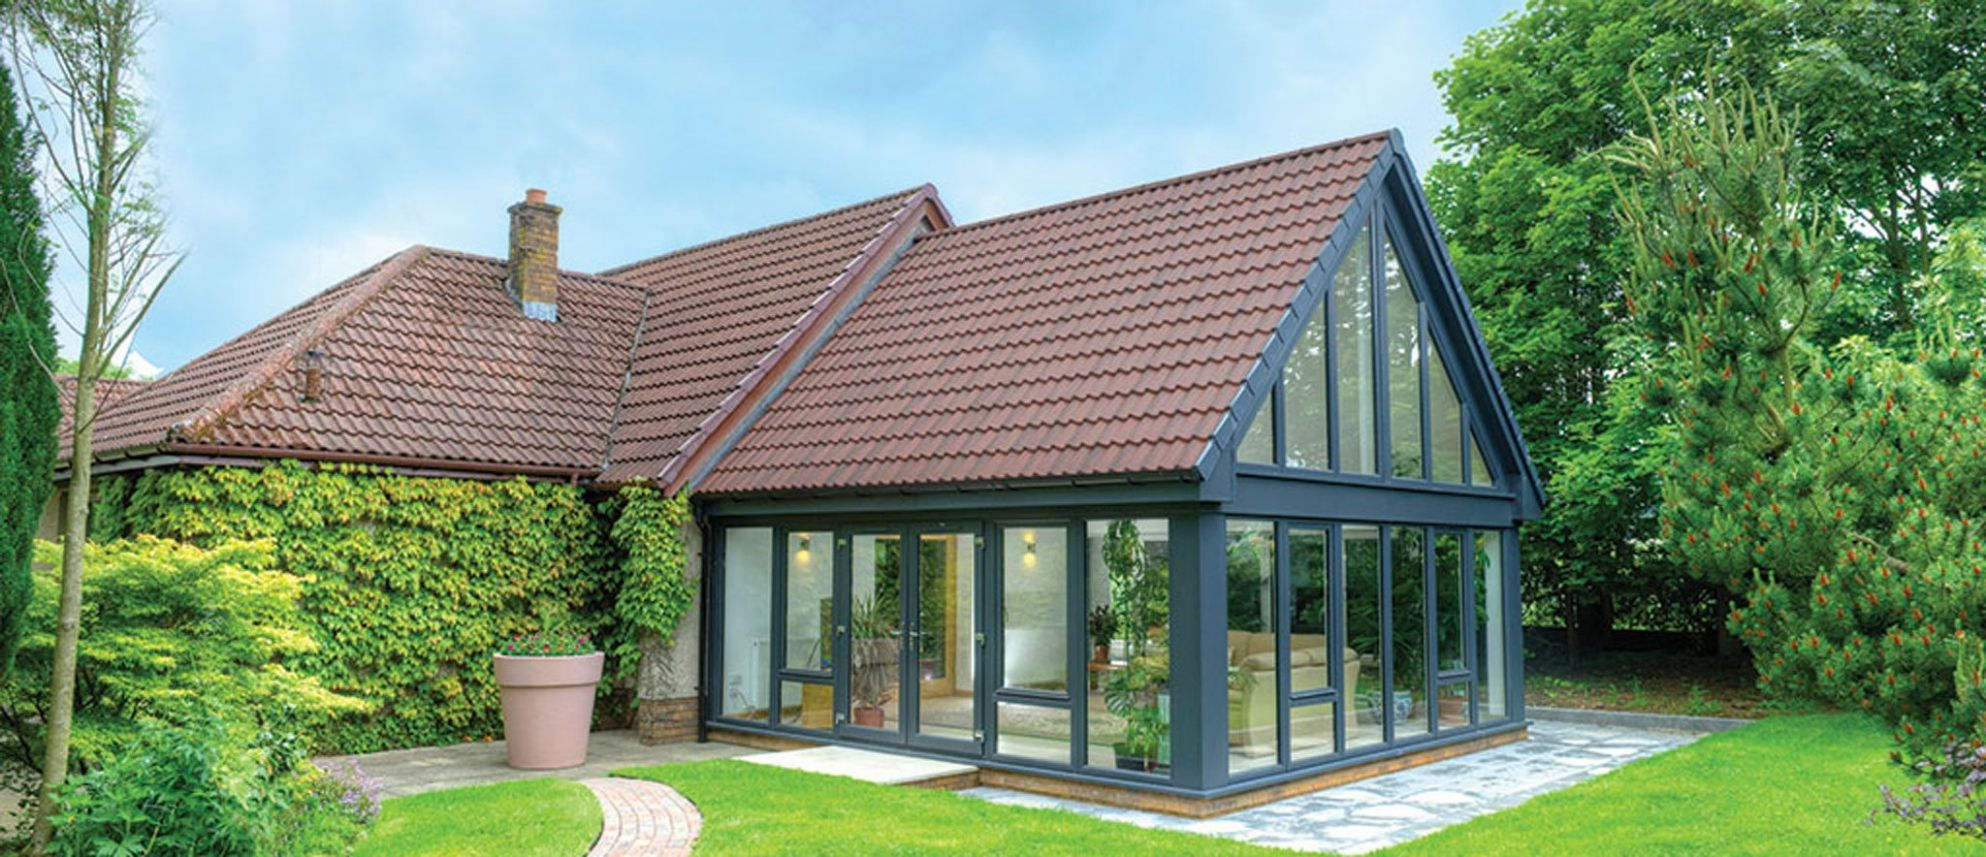 Tiled Sunrooms Conservatories - Tiled Roof Conservatories   CR Smith - sunroom ideas scotland